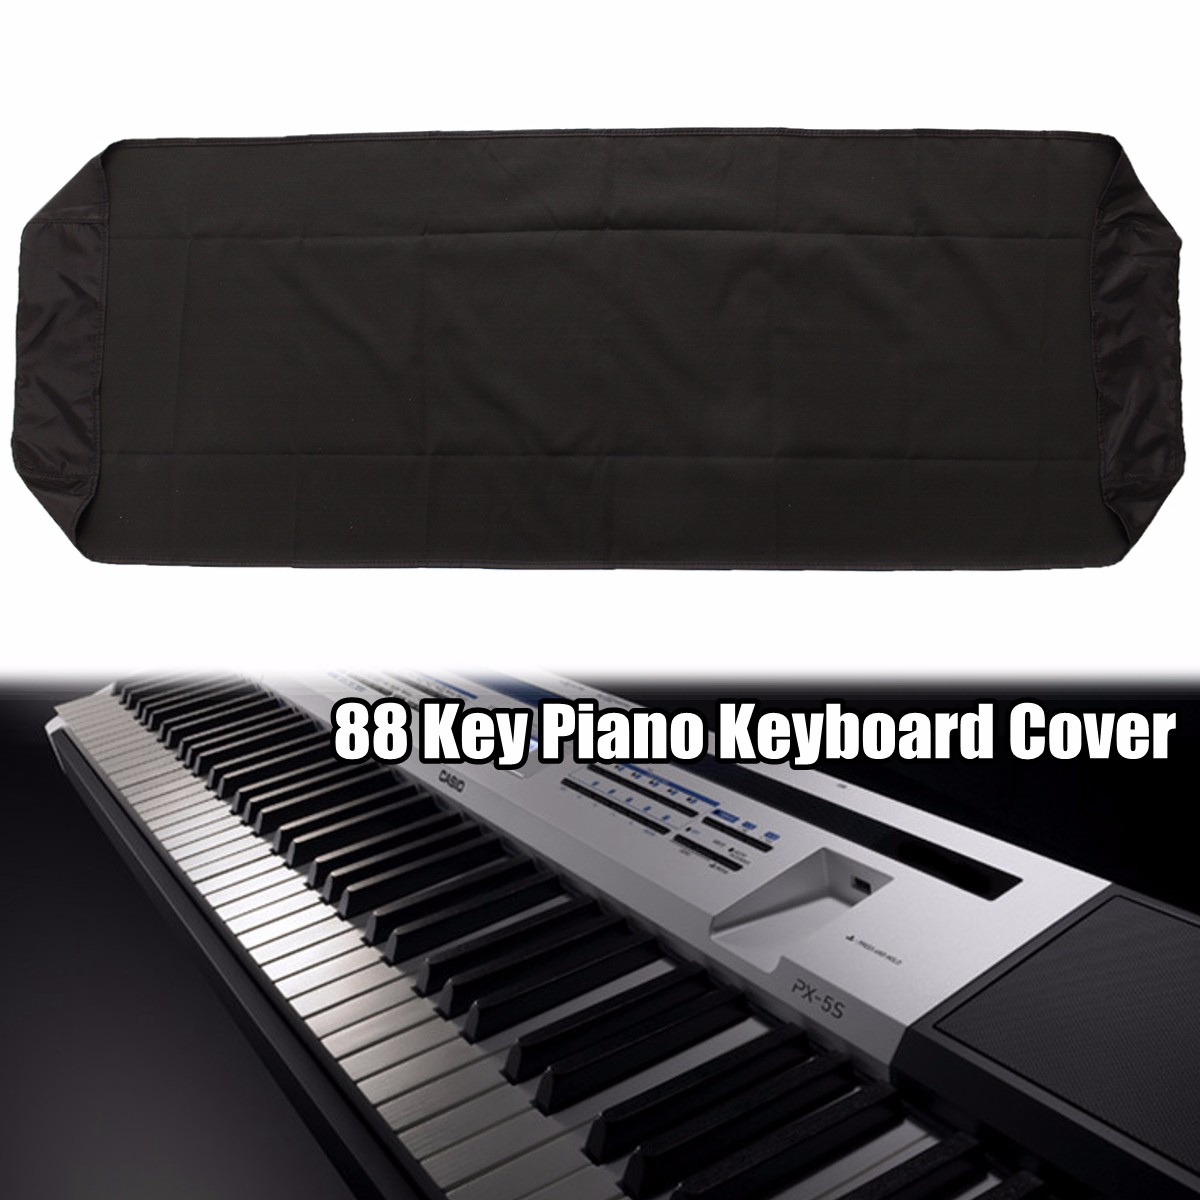 88Key Electronic Piano Keyboard Cover Protector Dustproof Dirt-proof 134x29x14cm